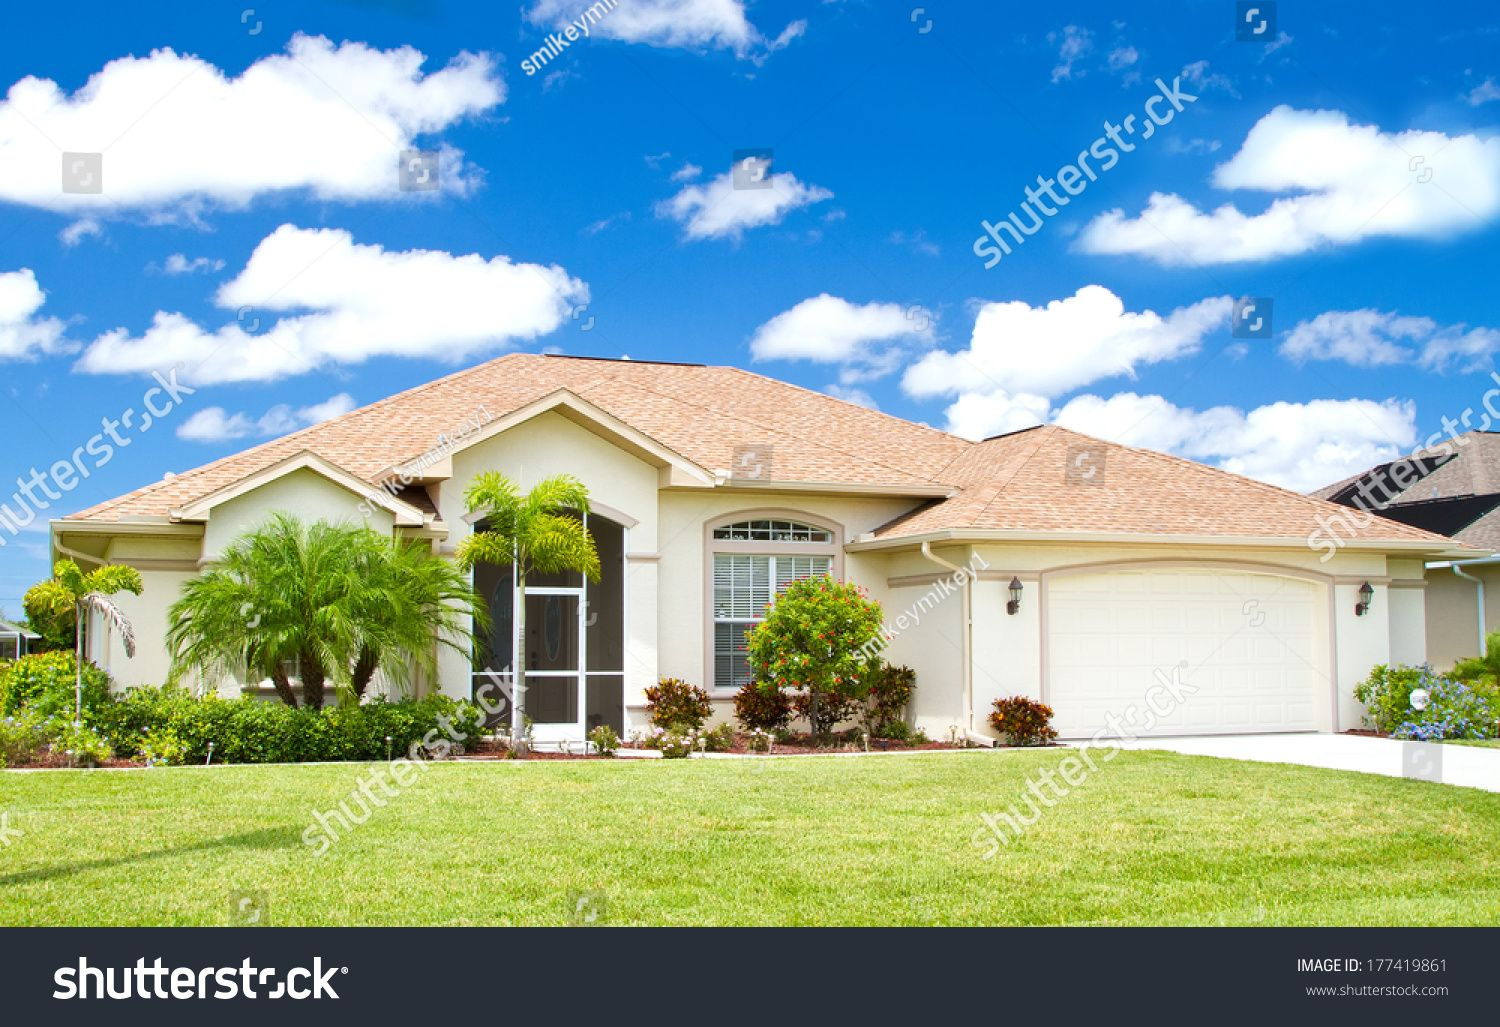 Stucco Homes With Palm Trees Typical Southwest Florida Concrete Block Stucco Stock San Diego Real Estate Stucco Homes Real Estate